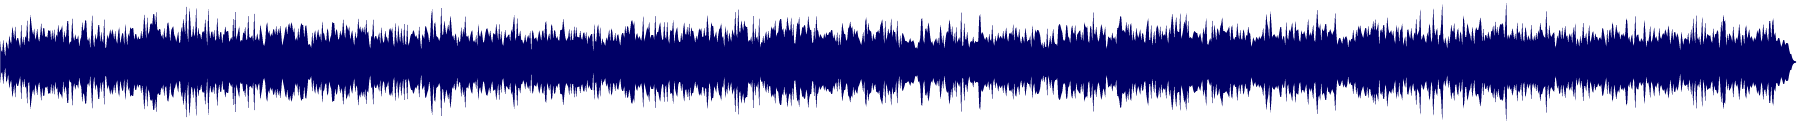 waveform of track #83016